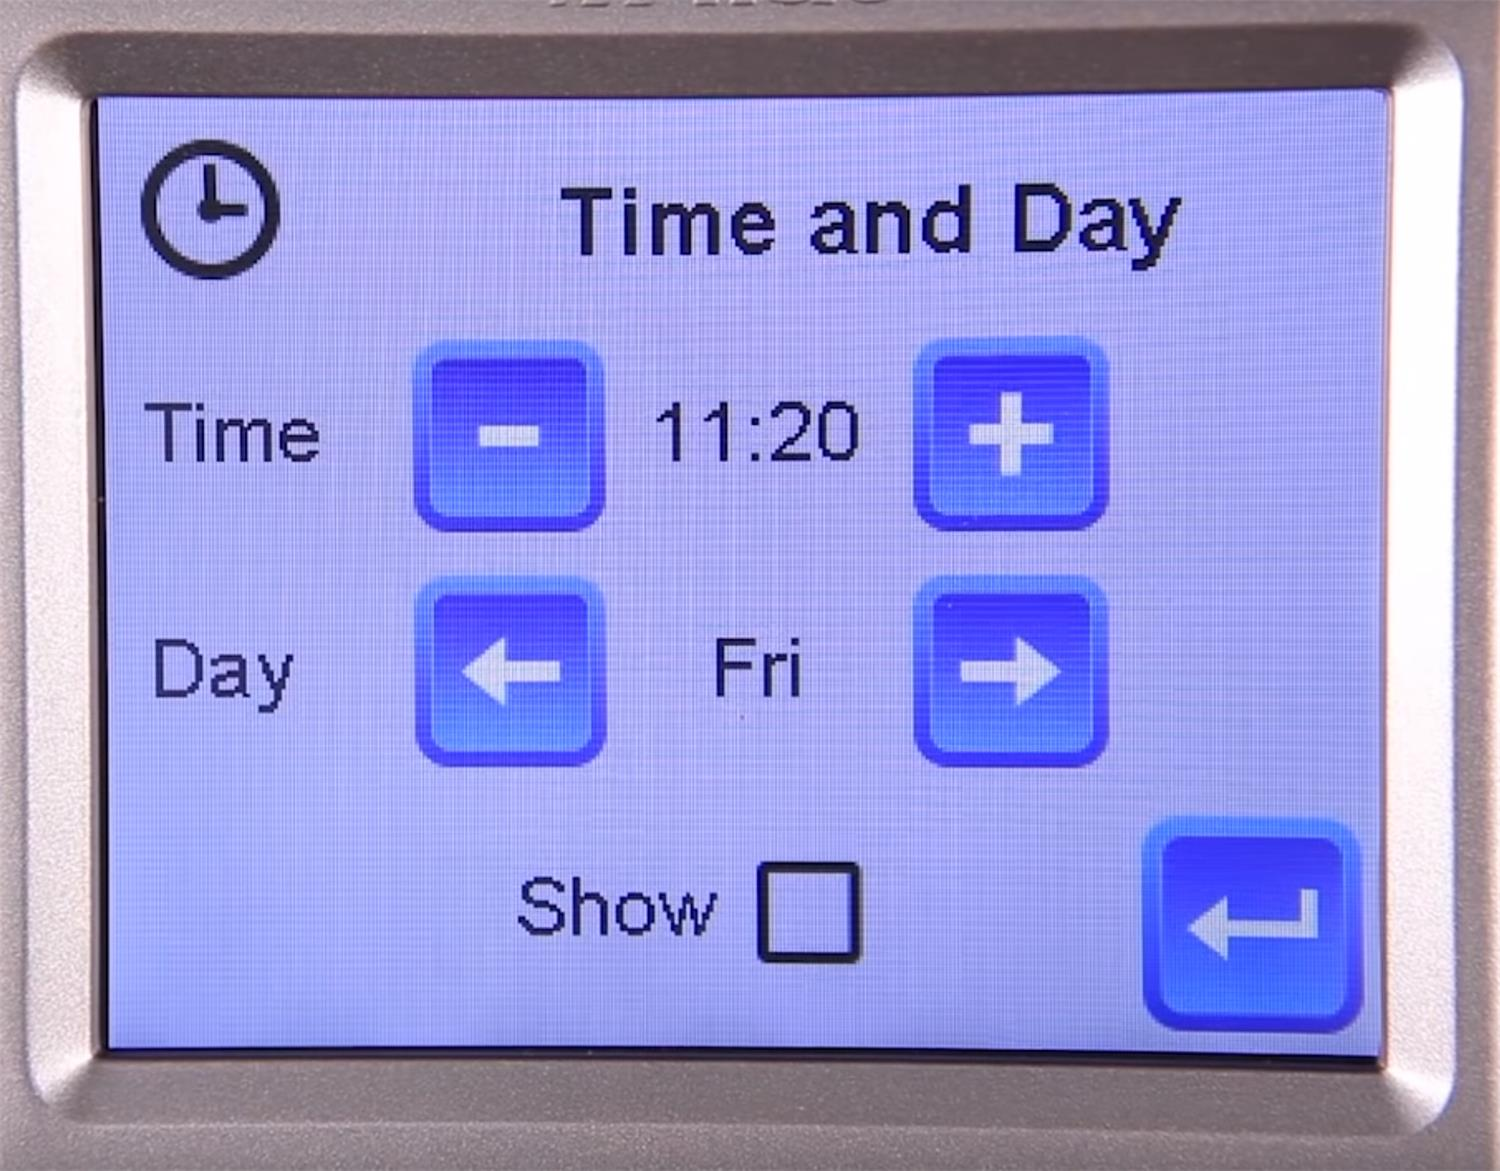 Alde 3020 Control panel- setting the time and day.